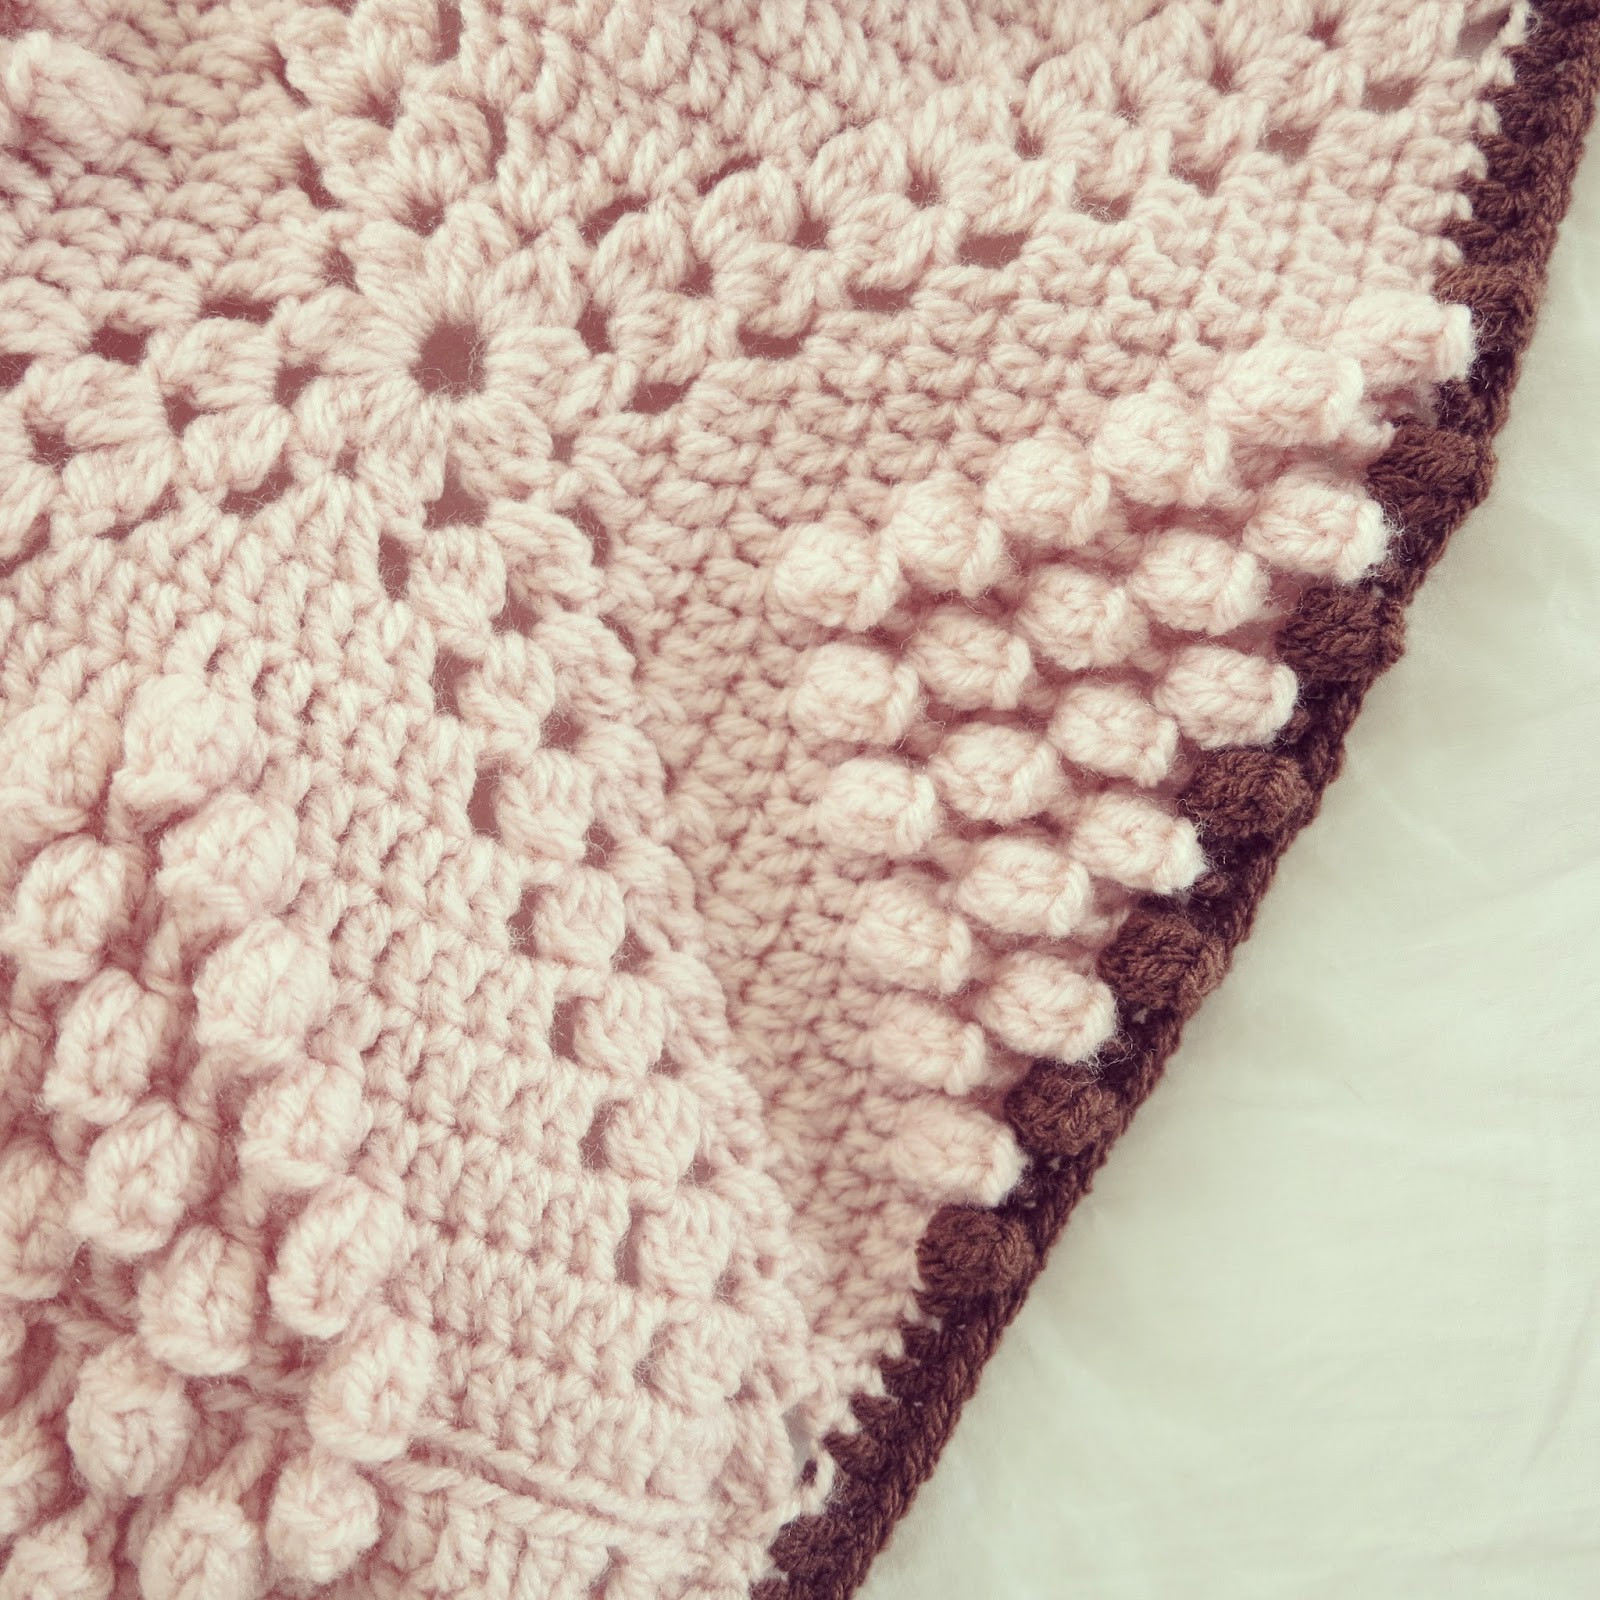 Beautiful byhaafner Crochet Pattern Popcorn Blanket Popcorn Stitch Crochet Patterns Of Brilliant 41 Ideas Popcorn Stitch Crochet Patterns